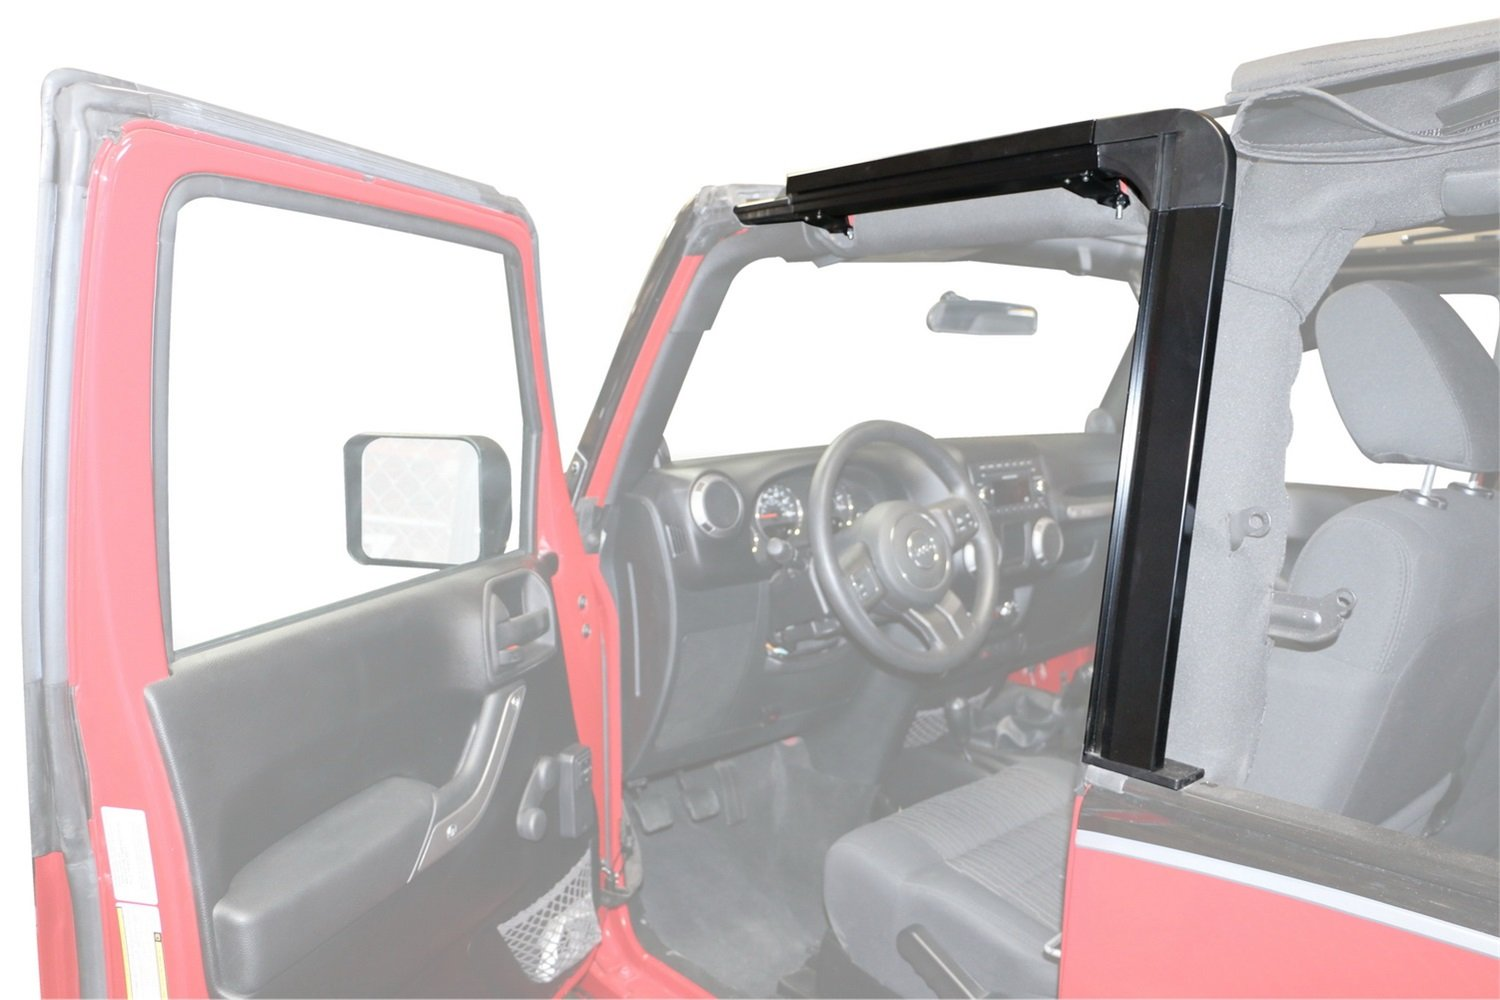 Rampage Products 61099 Door Surround Kit (for 07-16 Jeep Wrangler JK 2-door) by RAMPAGE PRODUCTS